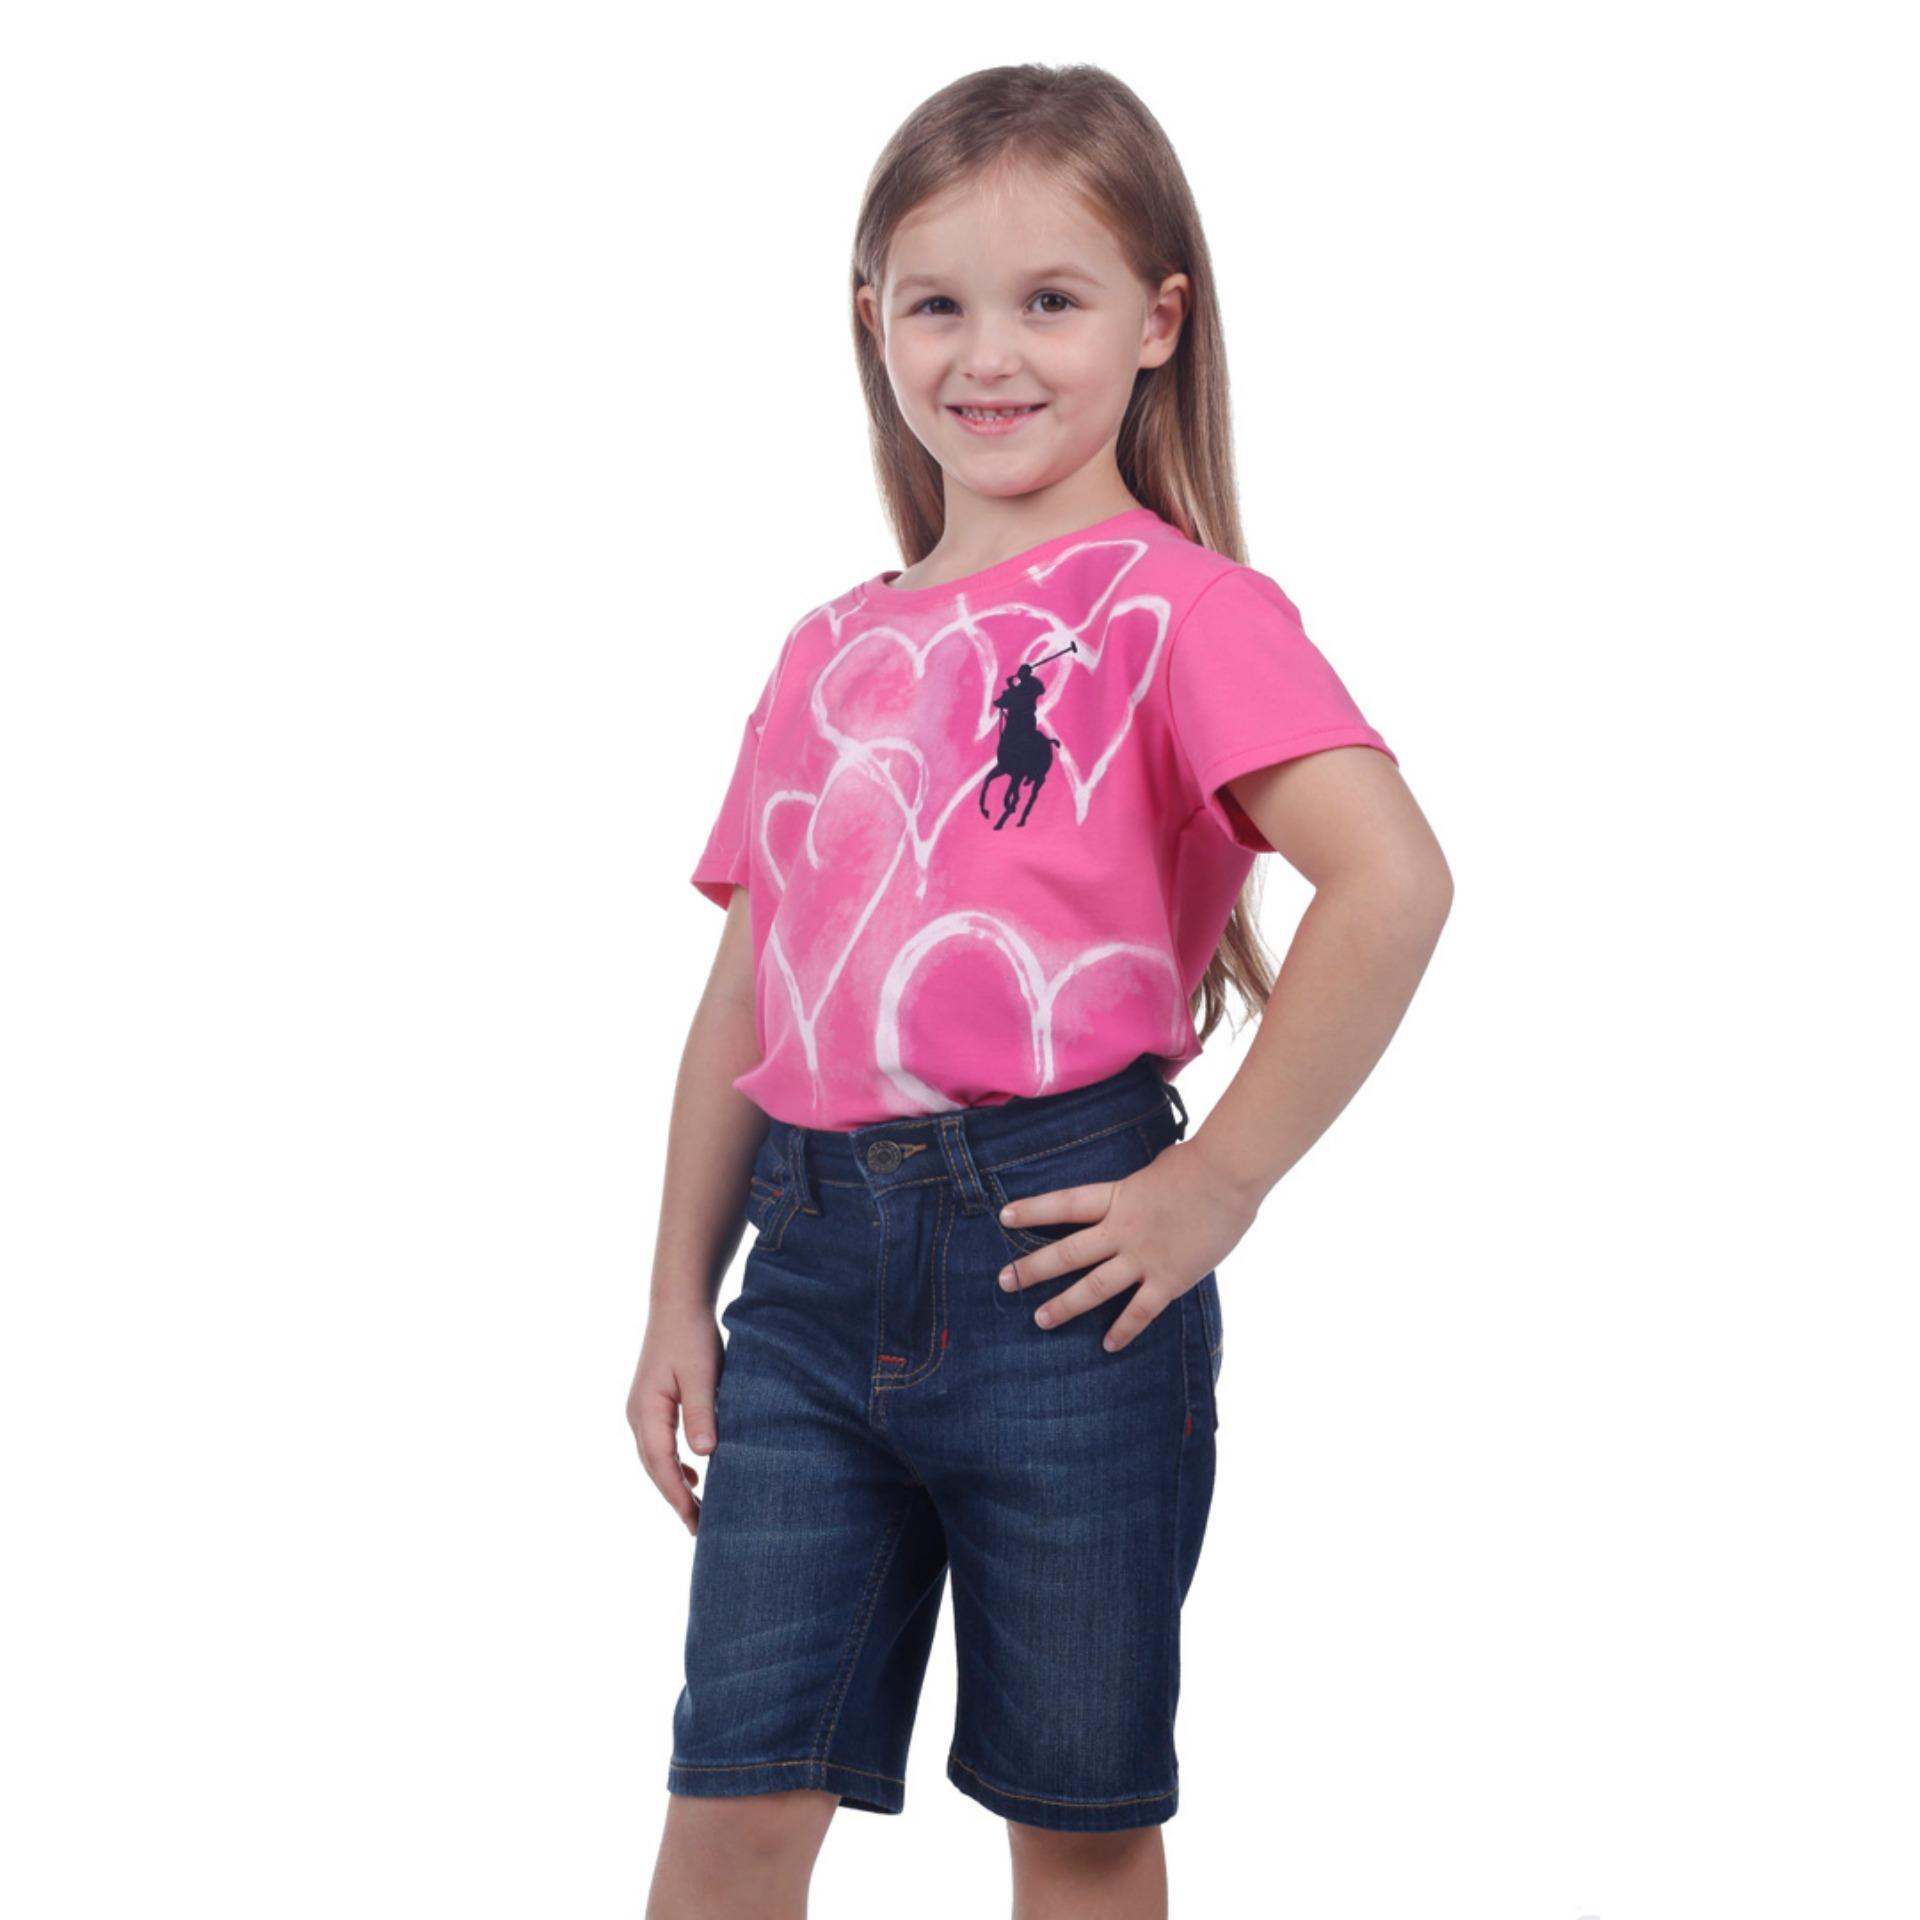 POLO RALPH LAUREN - T SHIRT CUSTOM FIT S/S Maui Pink KIDS GIRL